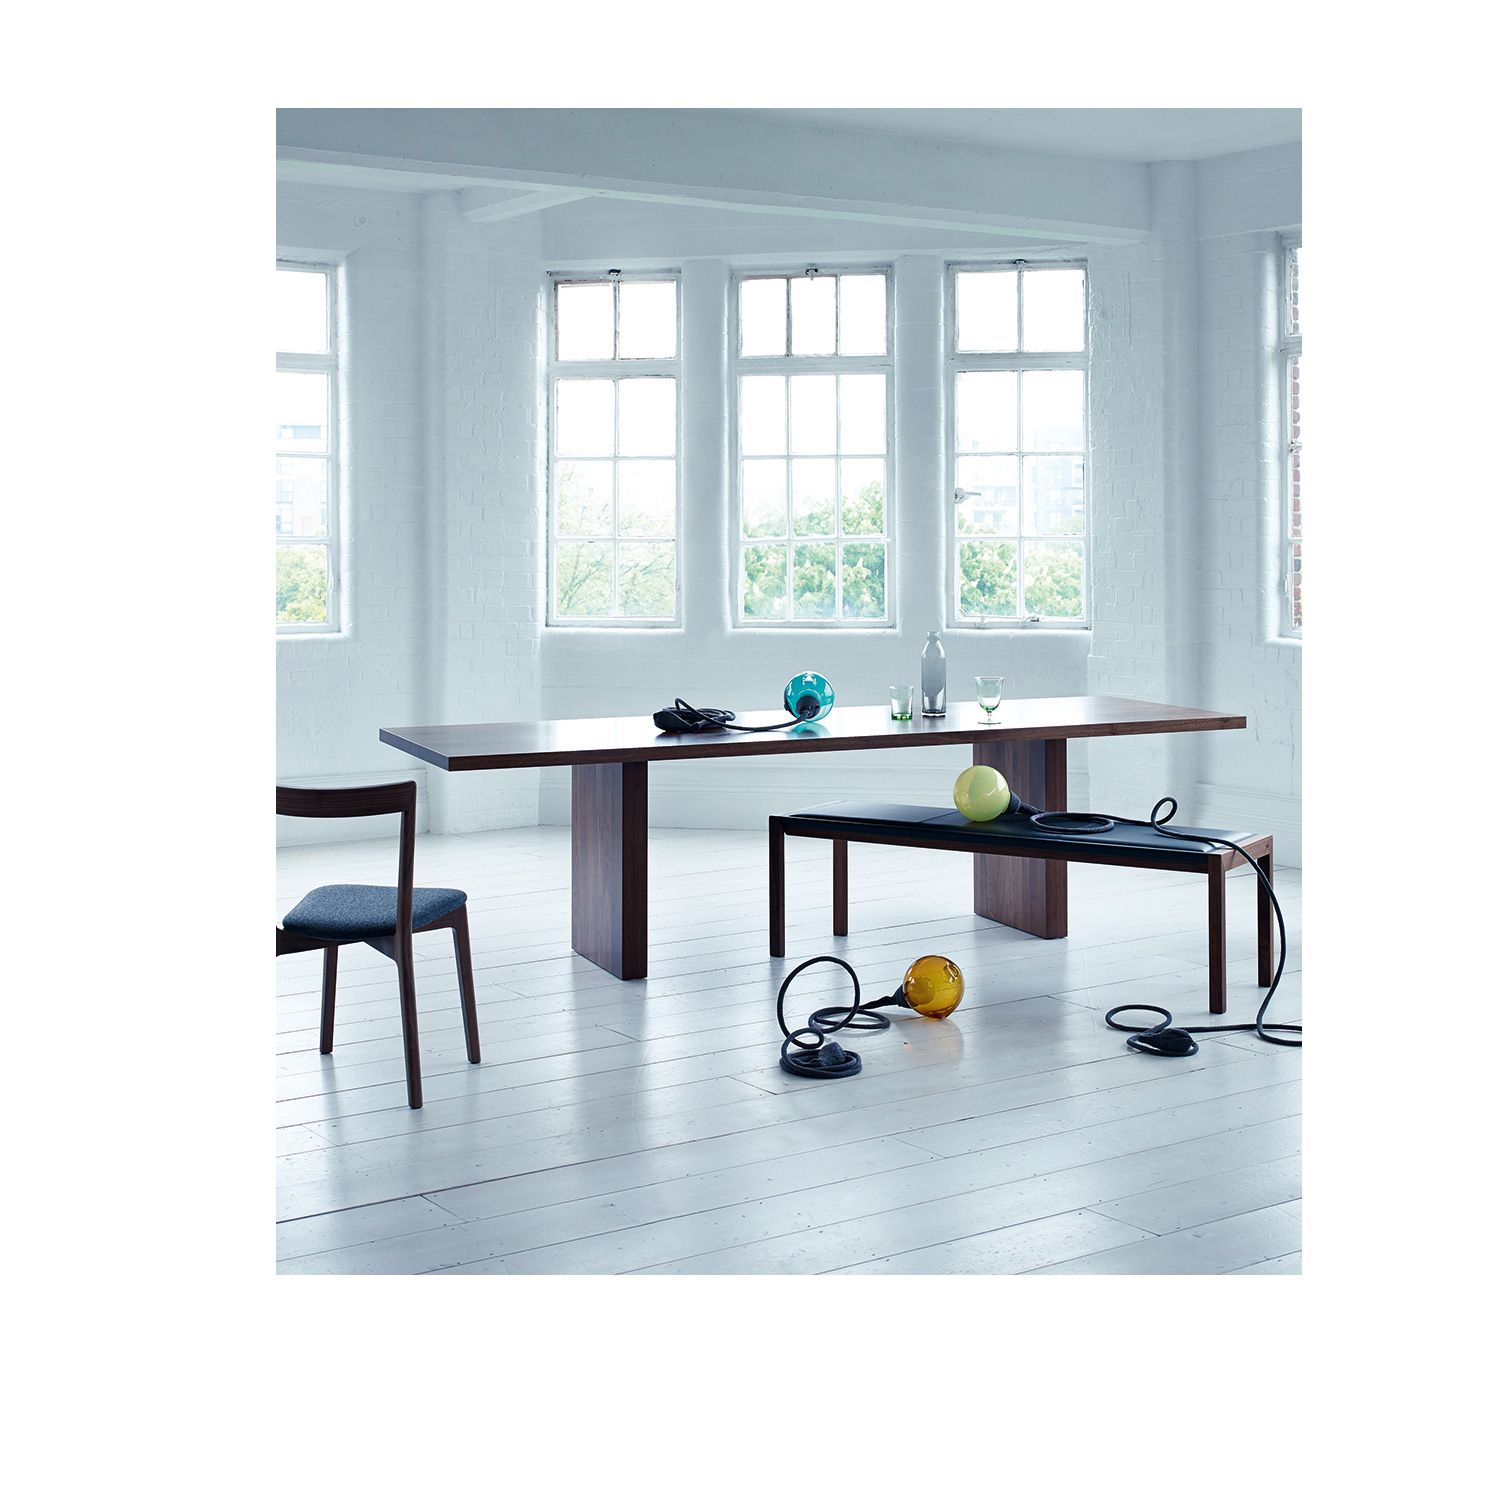 Heal's Balance Dining Table   Rectangular Tables   Dining Tables   Furniture   Heal's